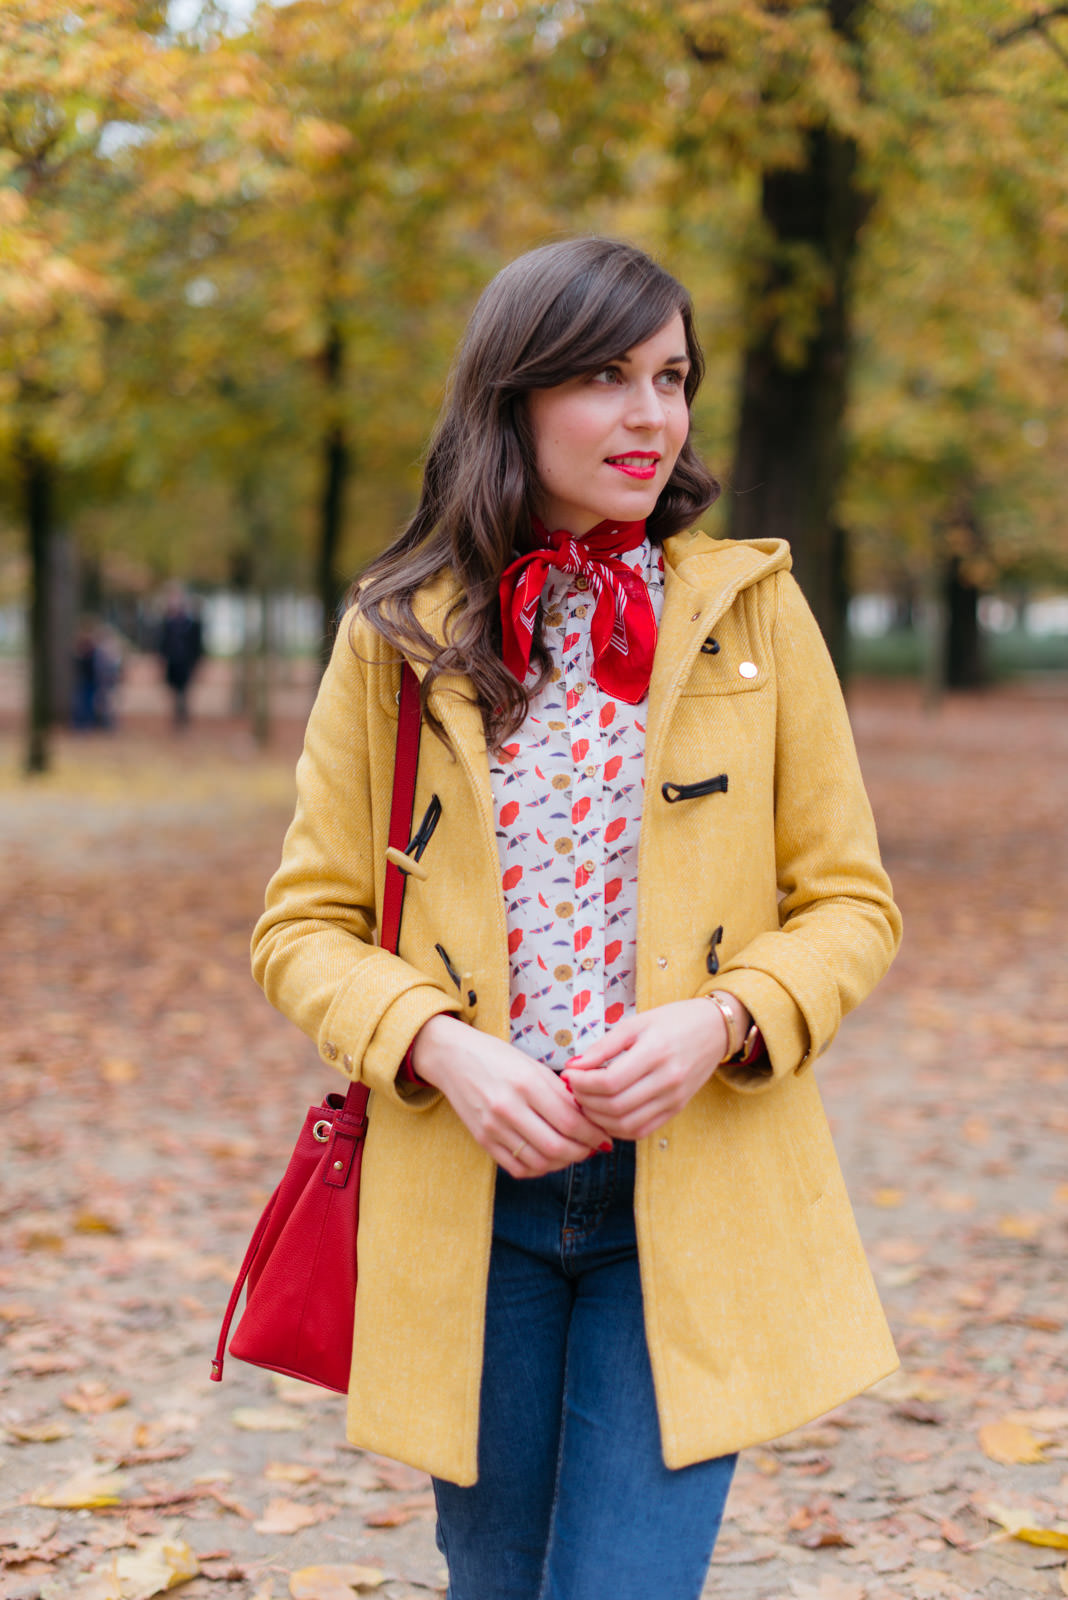 Blog-Mode-And-The-City-Lokks-Fille-de-Automne-8